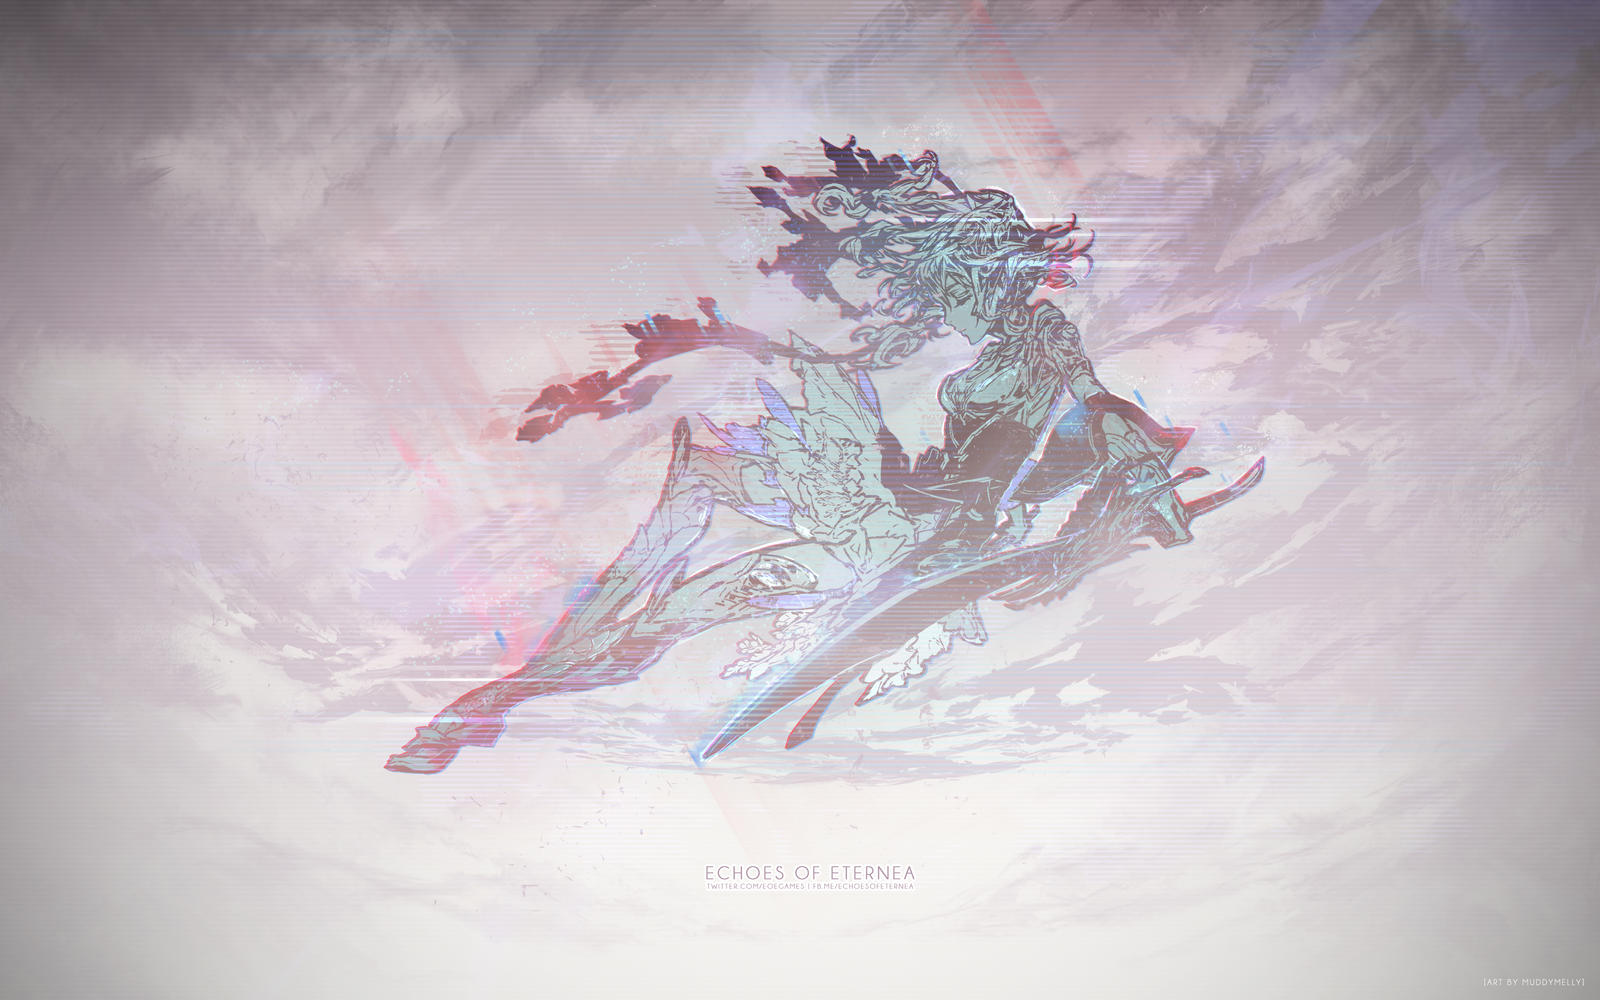 Echoes of Eternea: Namie Logo, Glitched